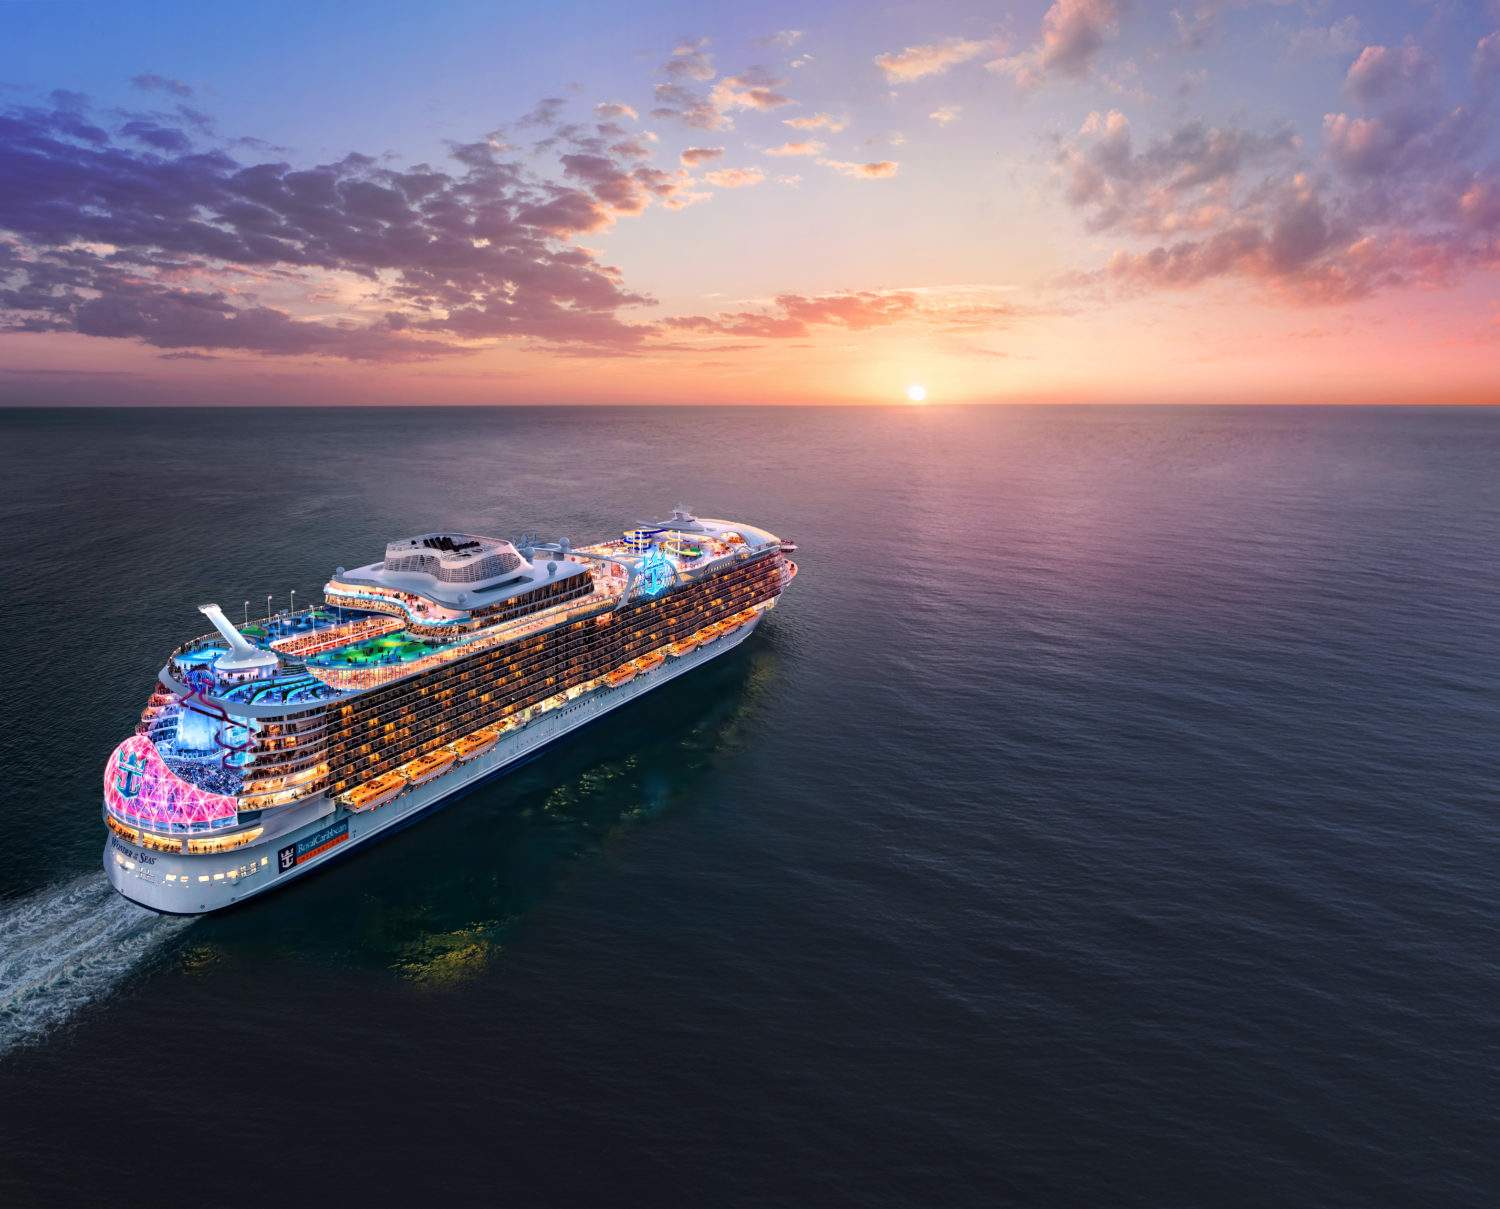 Wonder of the Seas, Royal Caribbean's New Cruise Ship, is Headed to Asia